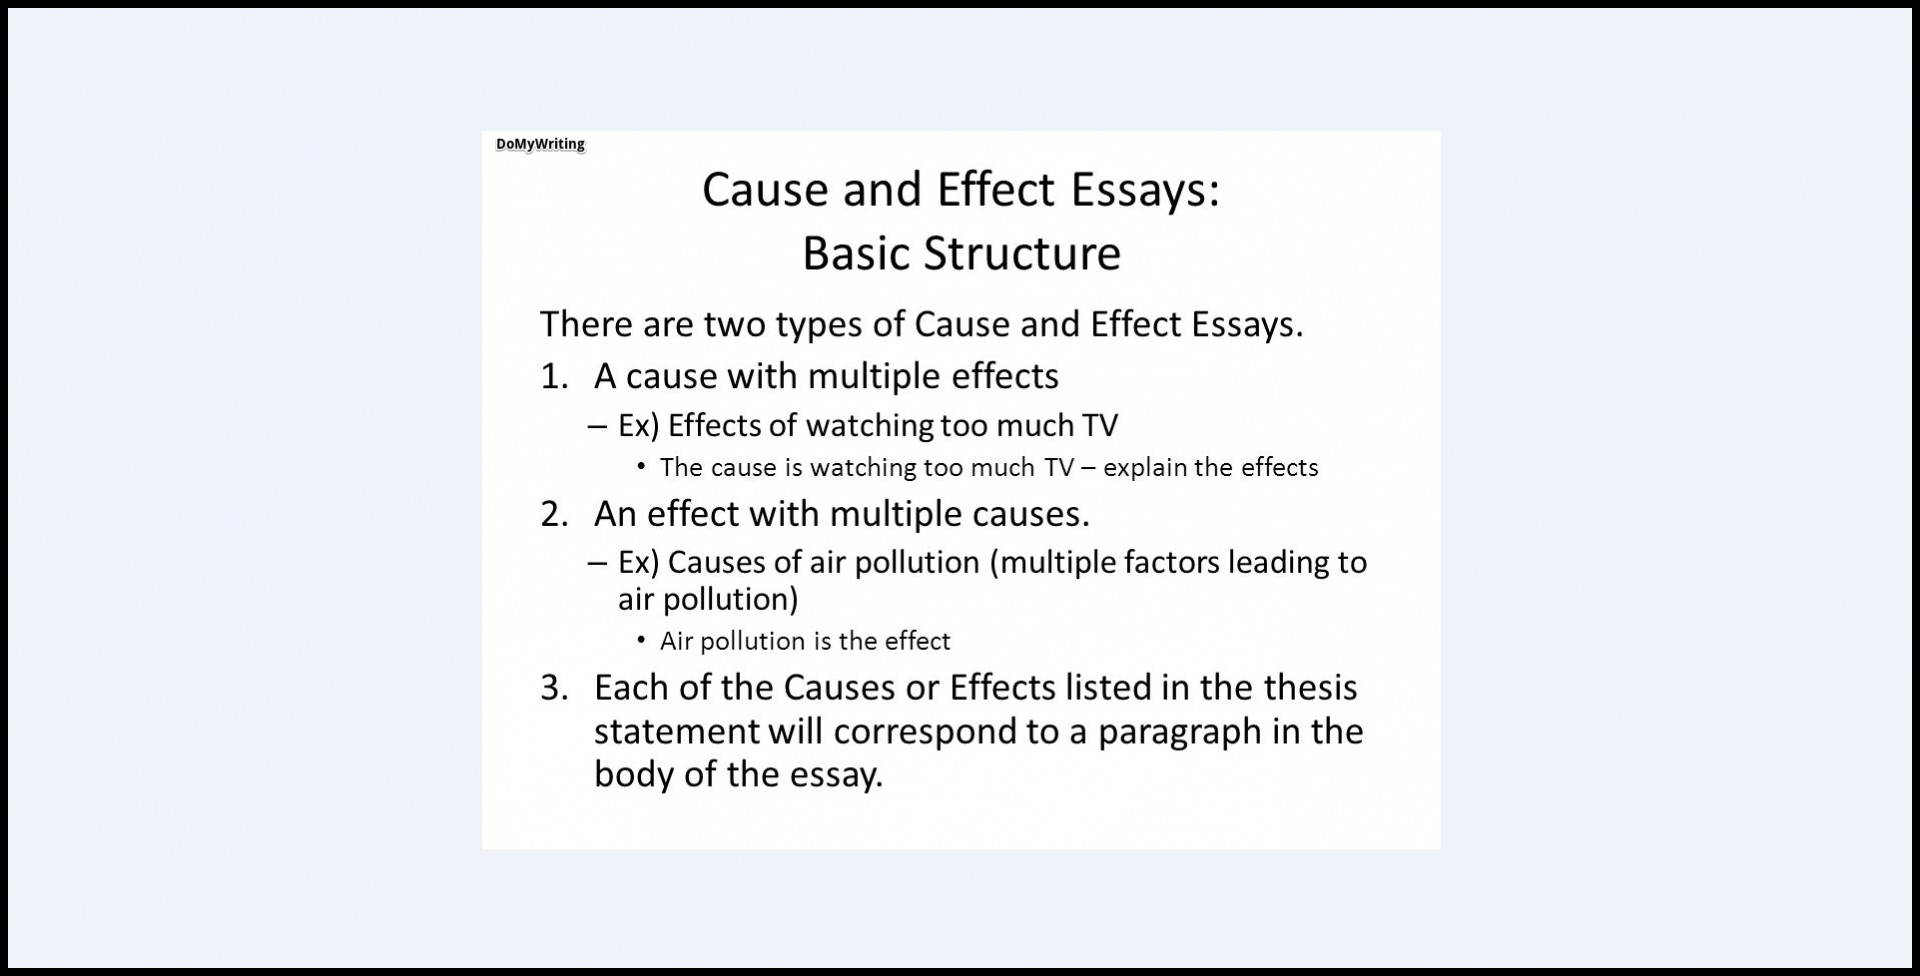 017 Essay Topics Cause And Effect Structure Archaicawful Writing For 6th Graders List Ielts Prompts 5th 1920